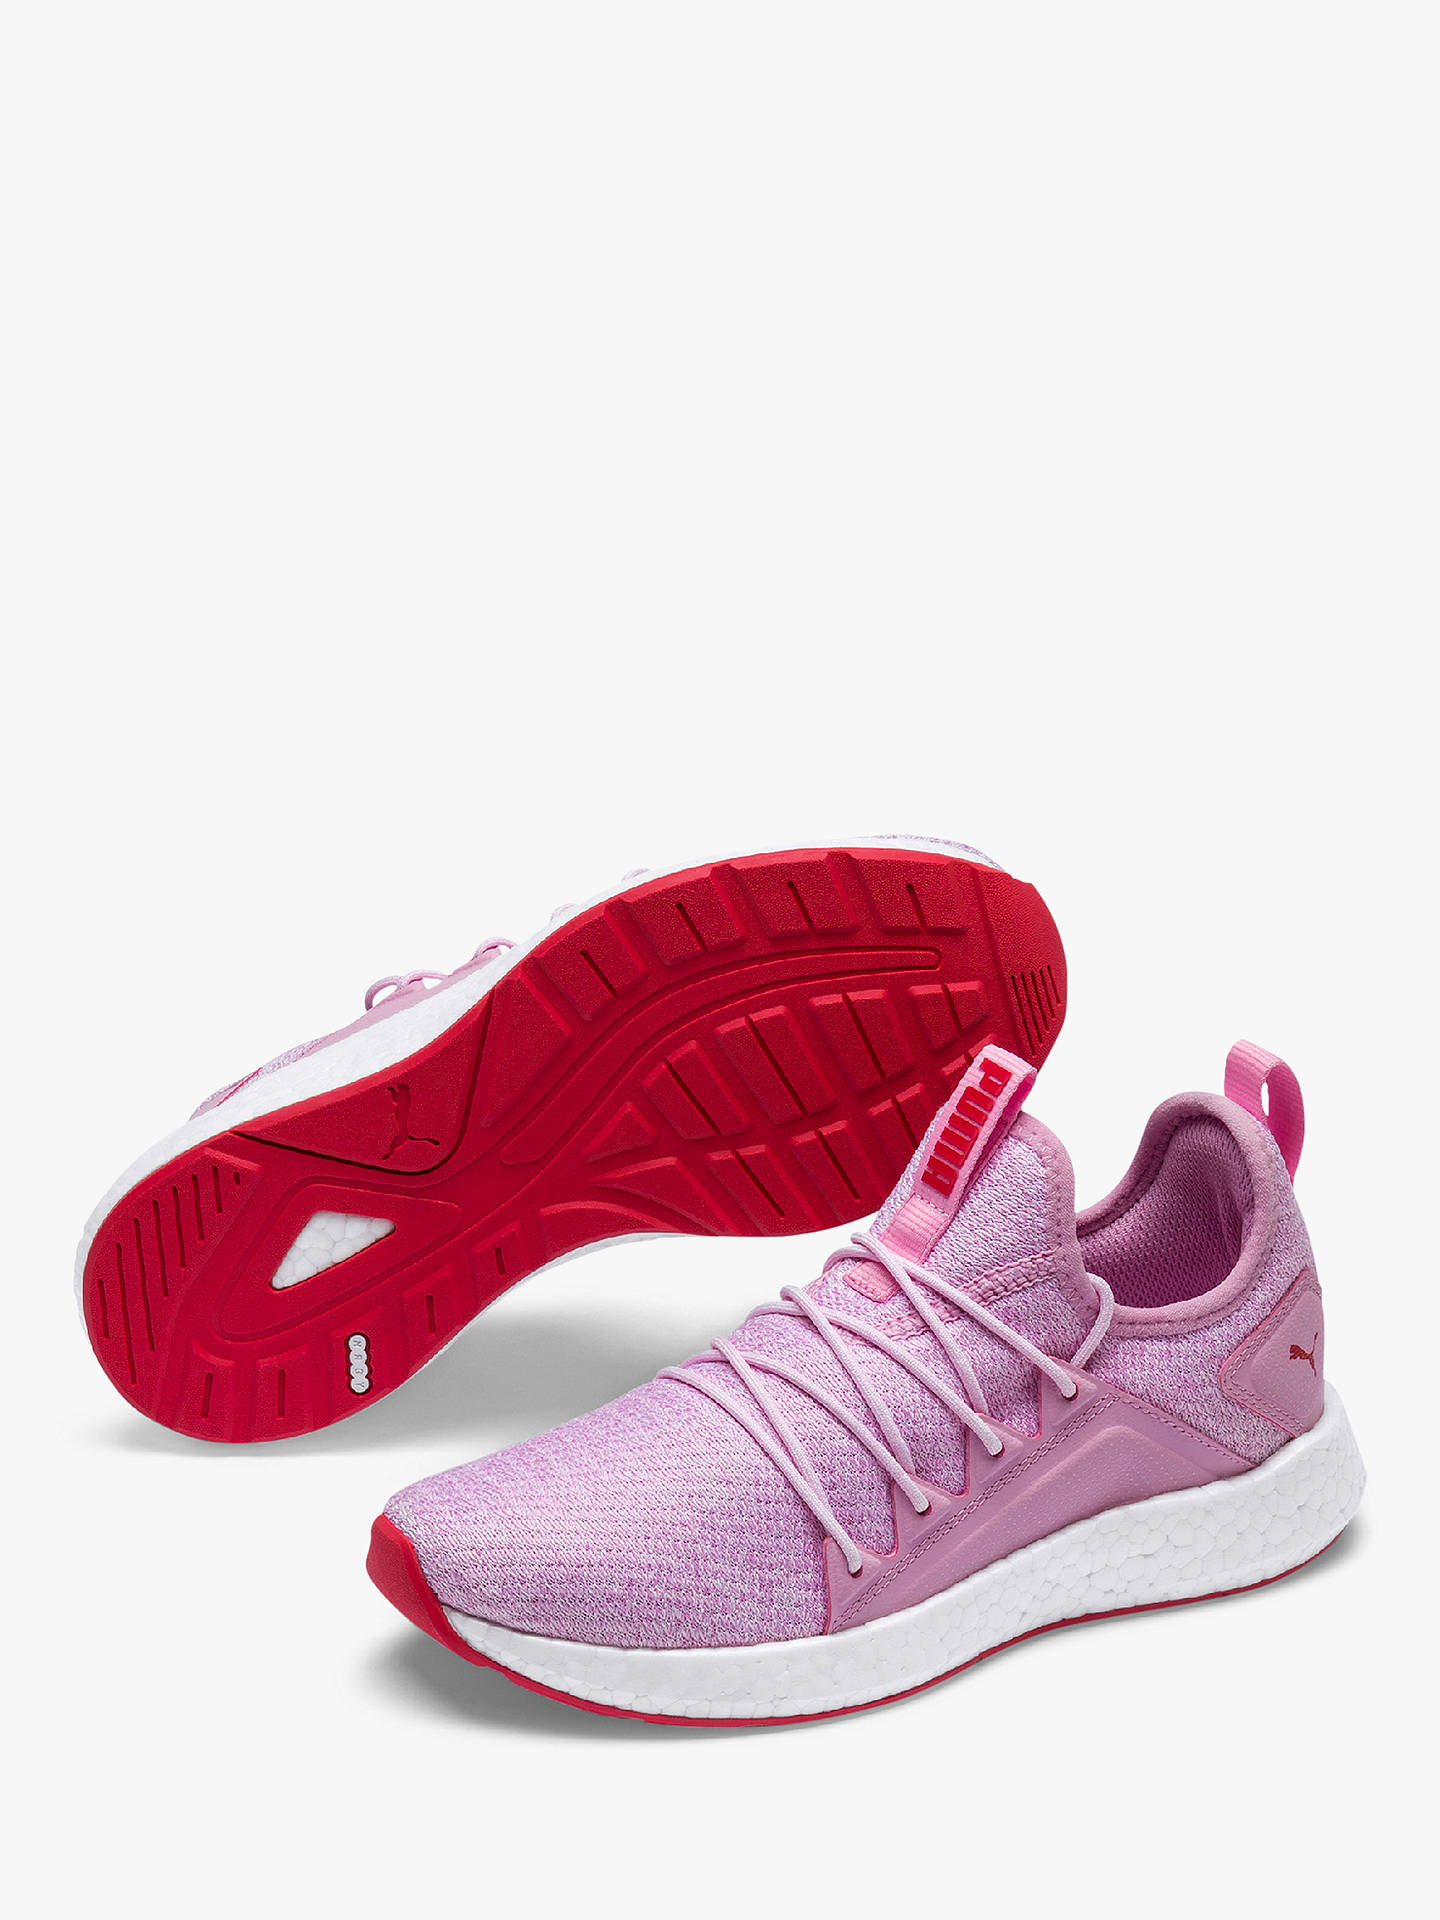 new style 5d5e8 15ea1 PUMA Children's NRGY Neko Knit Trainers, Pink